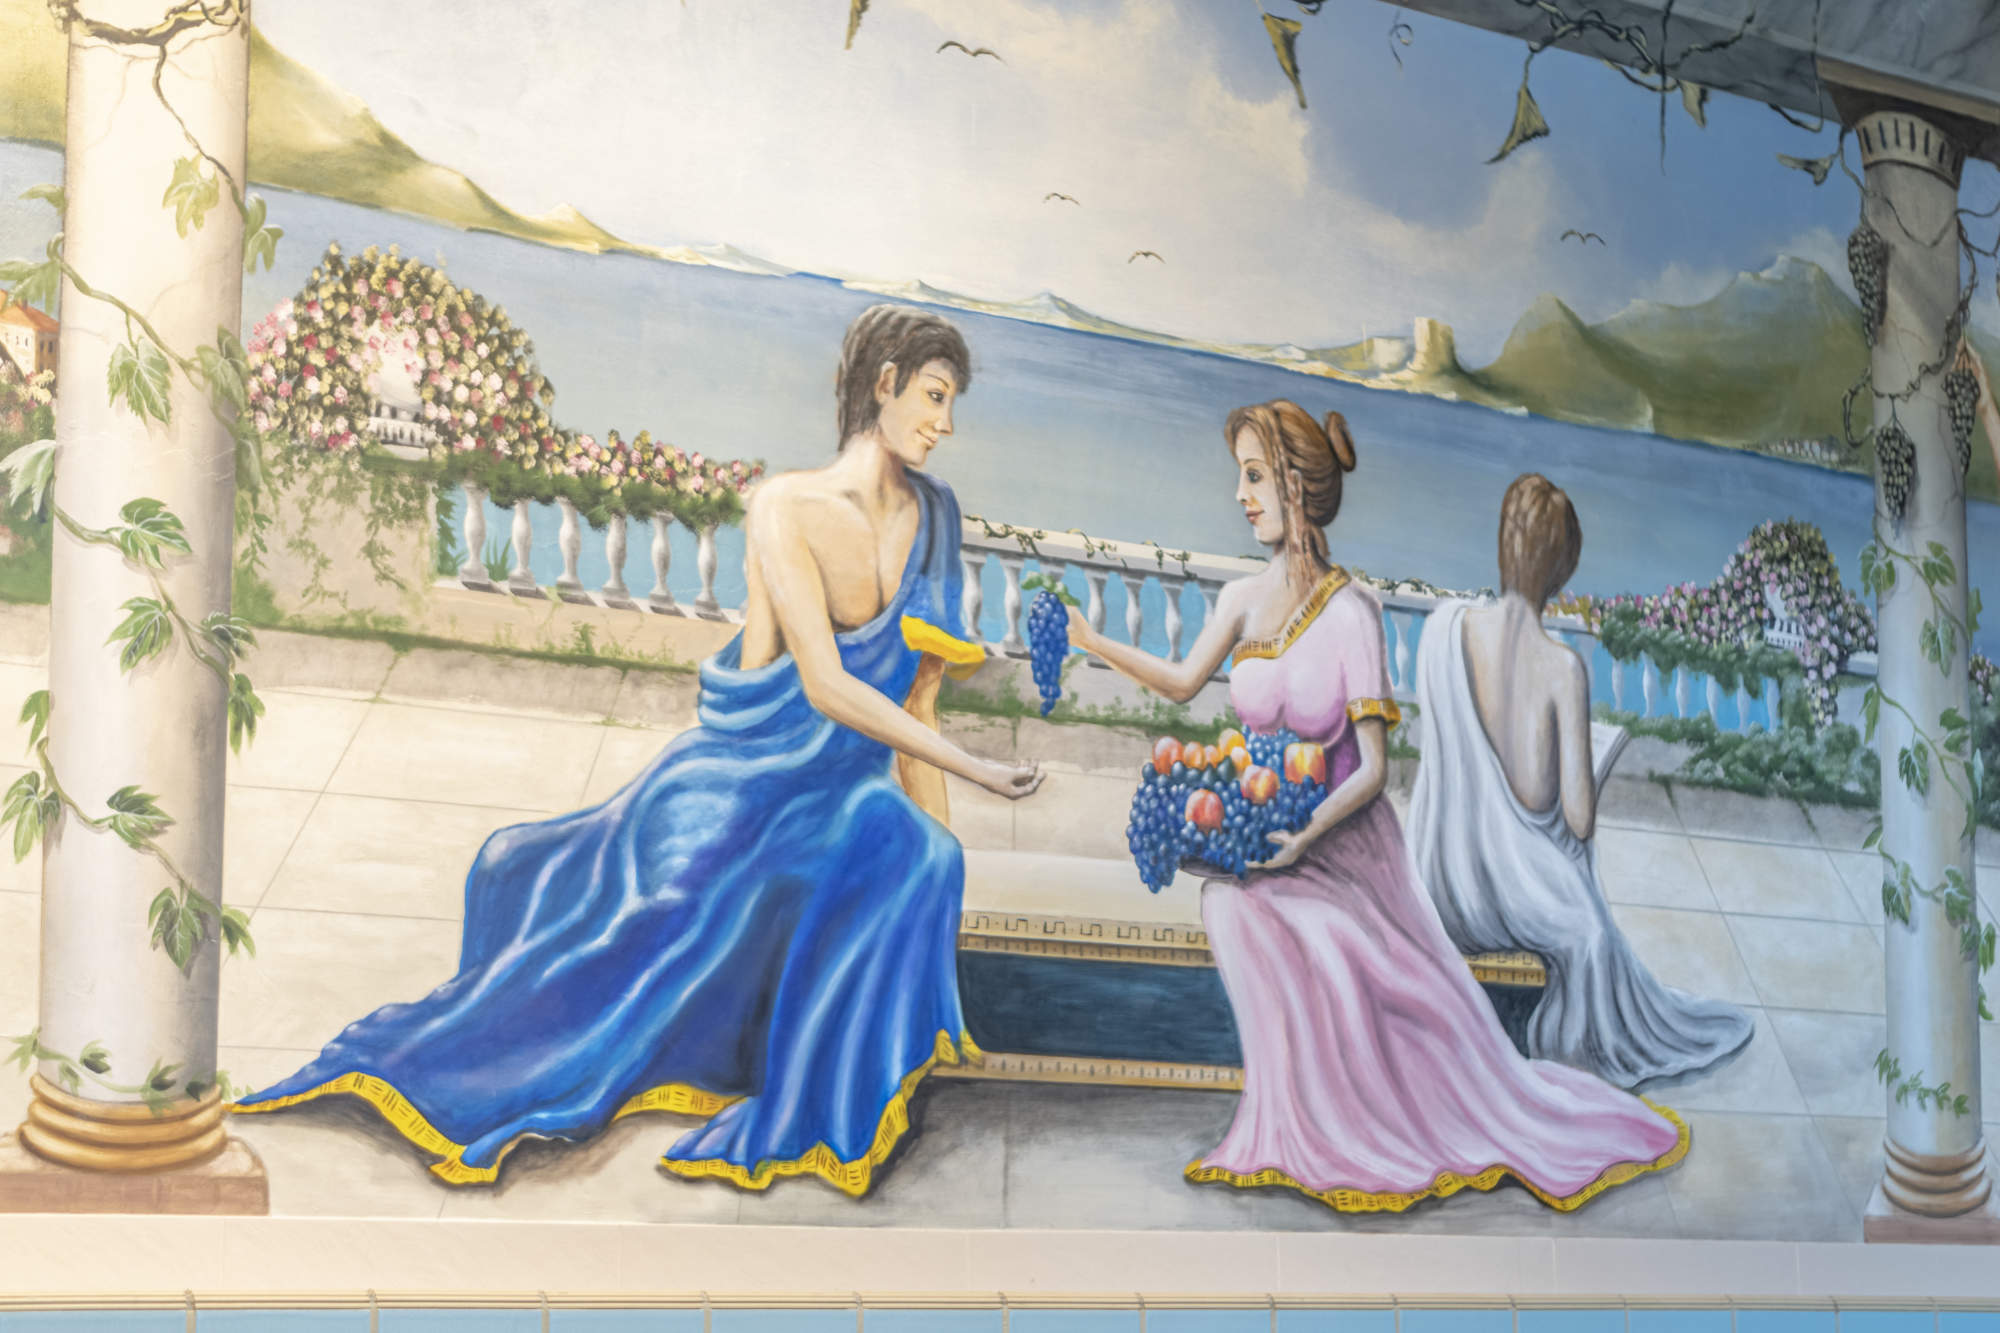 Painting in the swimming pool